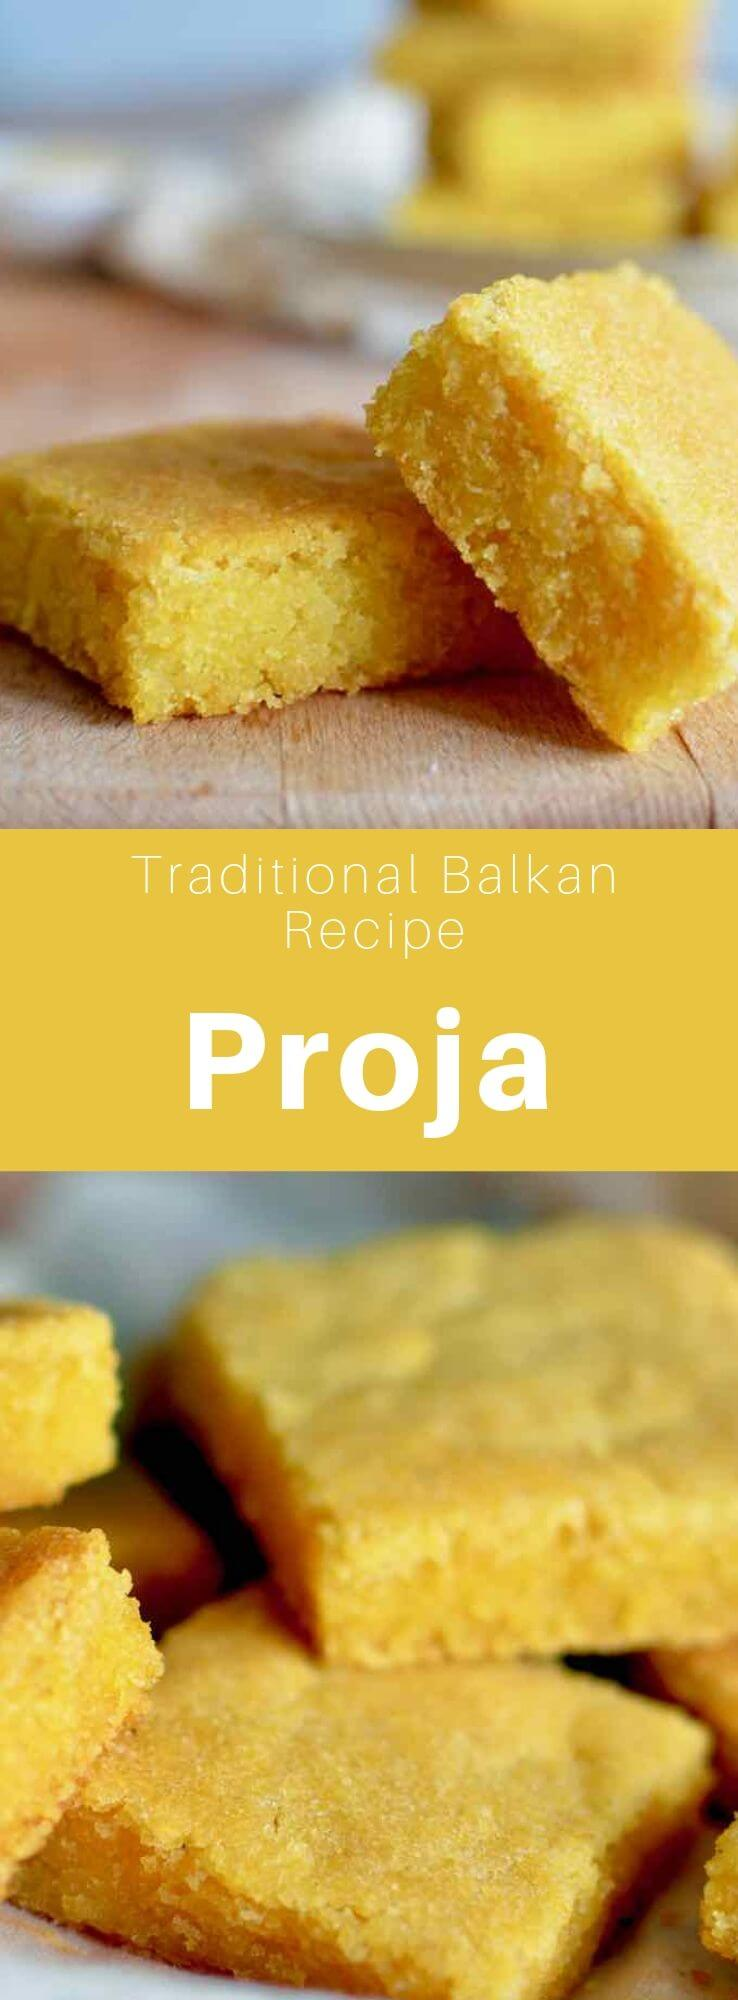 The proja is a traditional flatbread from the Balkan region that is made from cornmeal. It is called proha in Bosnia and Herzegovina. #Bosnia #Bakans #WorldCuisine #196flavors